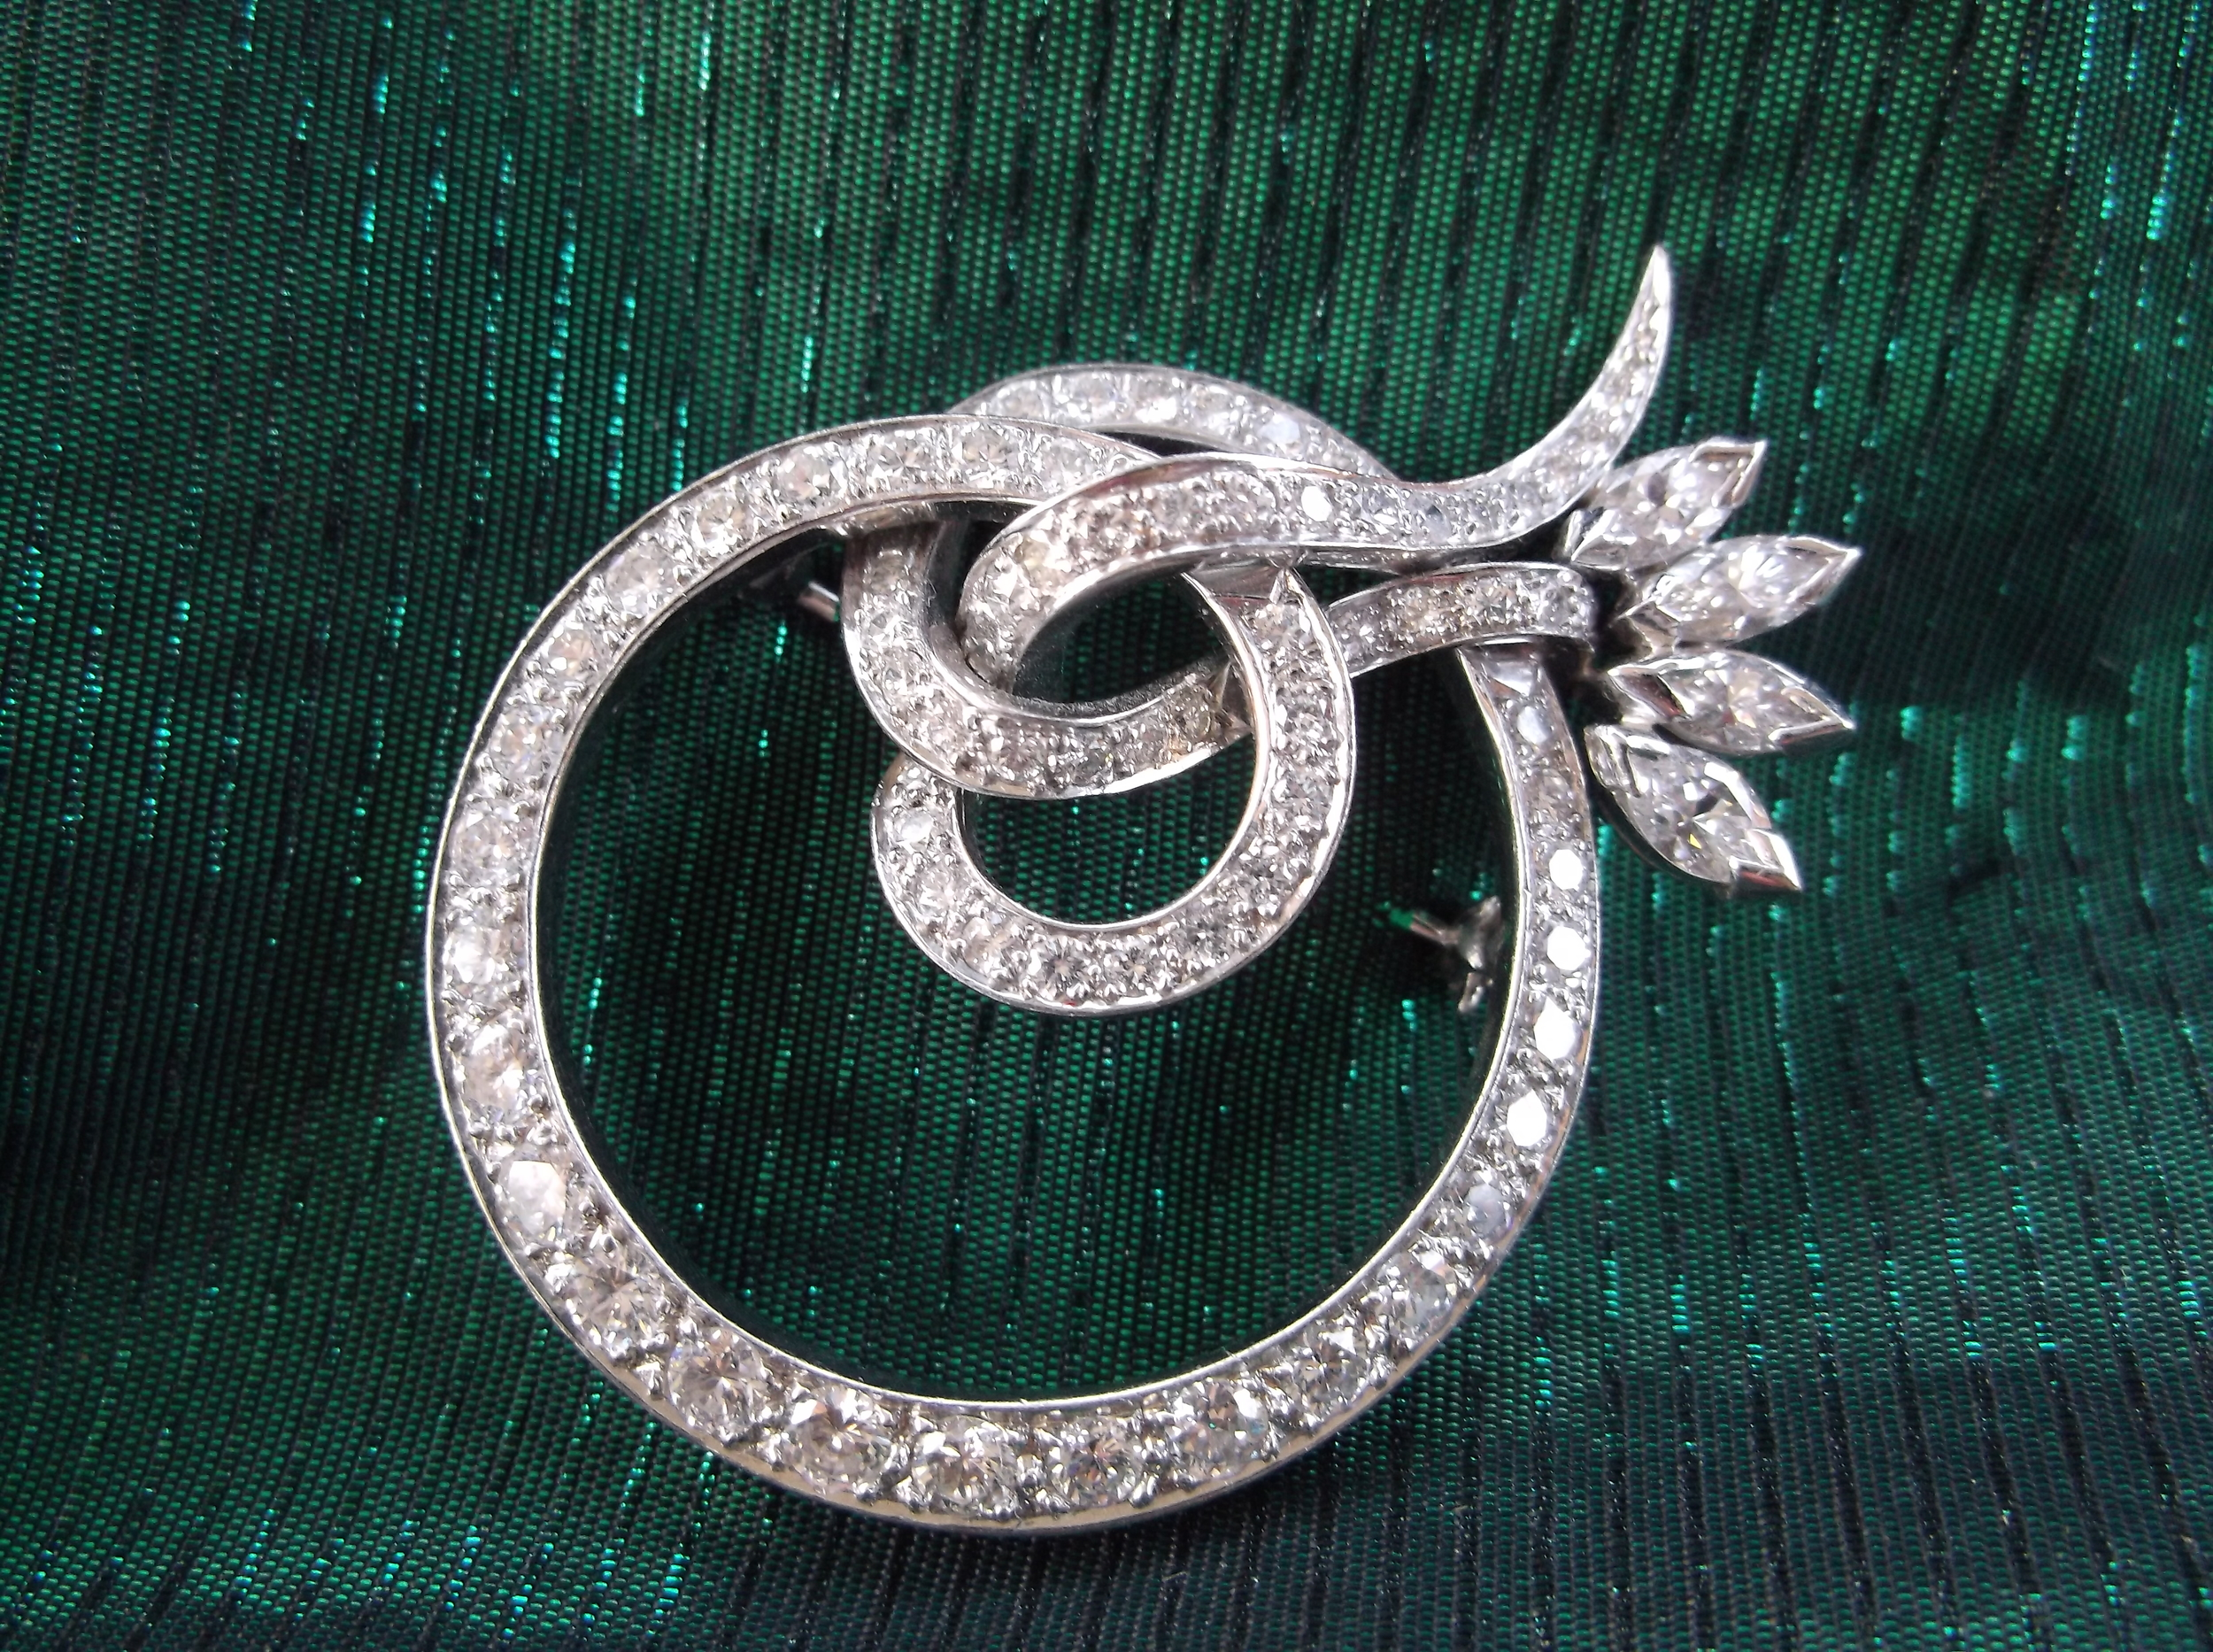 Lovely 1920's circular diamond broach.